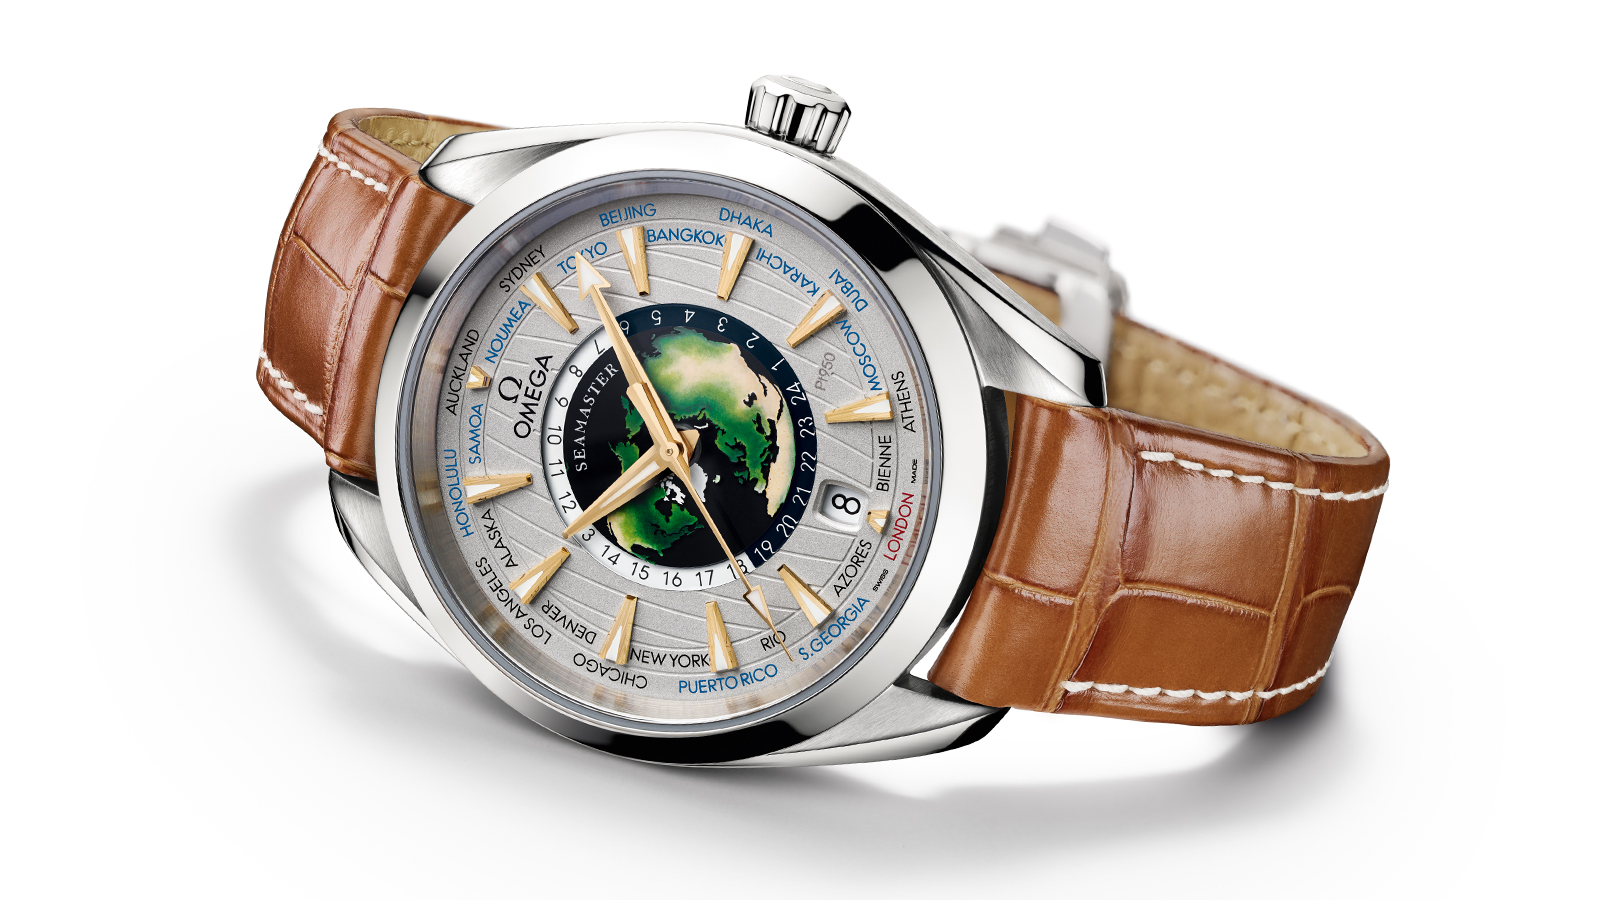 Seamaster Aqua Terra 150M Worldtimer limited edition watch with its disctinctive dial representing earth in the center and brown leather strap